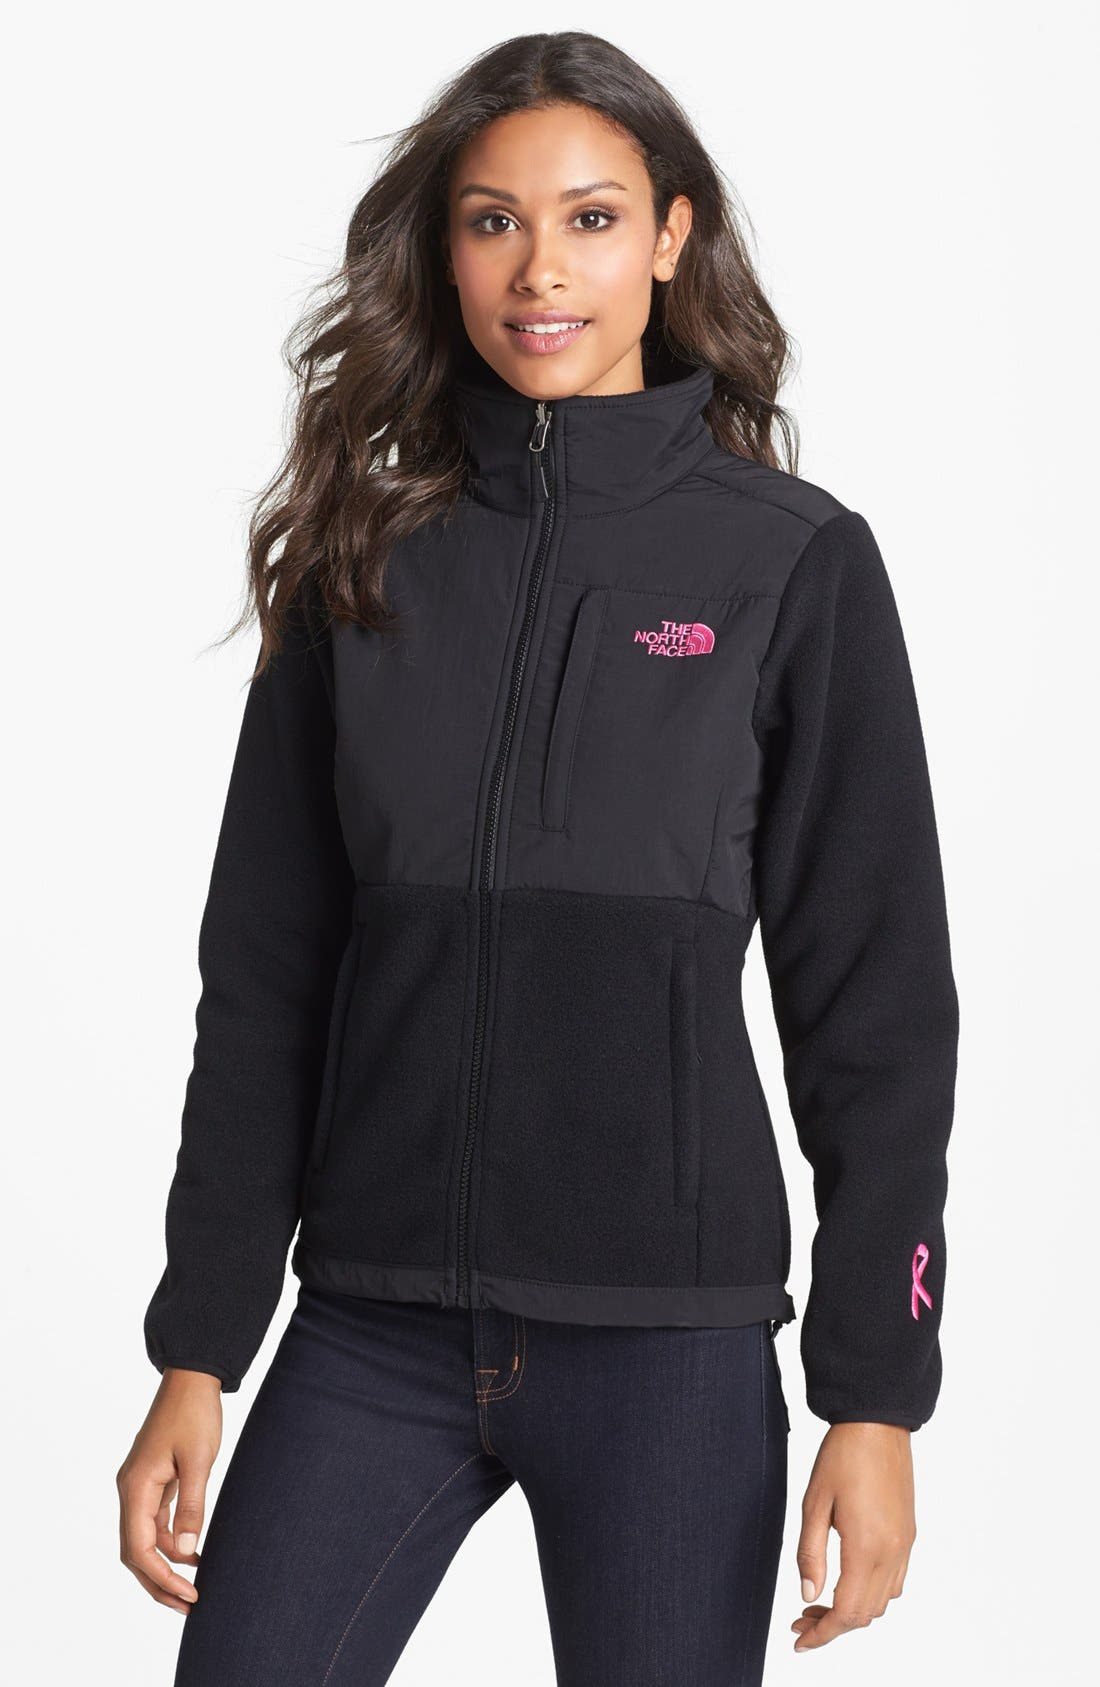 Main Image - The North Face 'Denali - Pink Ribbon' Jacket